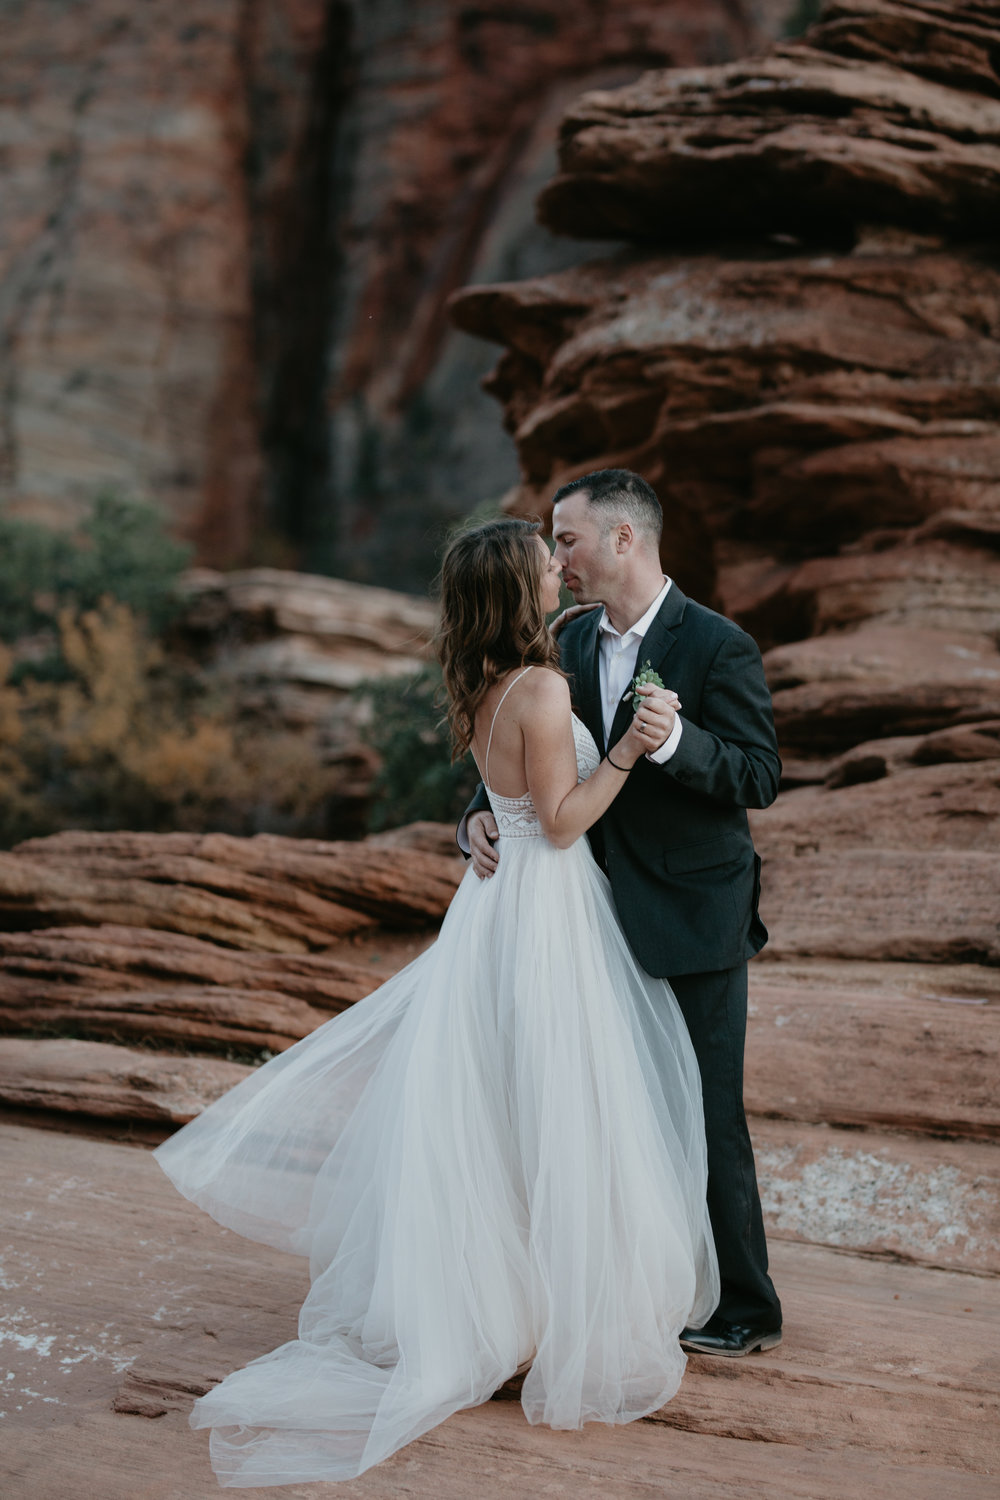 nicole-daacke-photography-zion-national-park-elopement-photographer-canyon-overlook-trail-elope-hiking-adventure-wedding-photos-fall-utah-red-rock-canyon-stgeorge-eloping-photographer-86.jpg